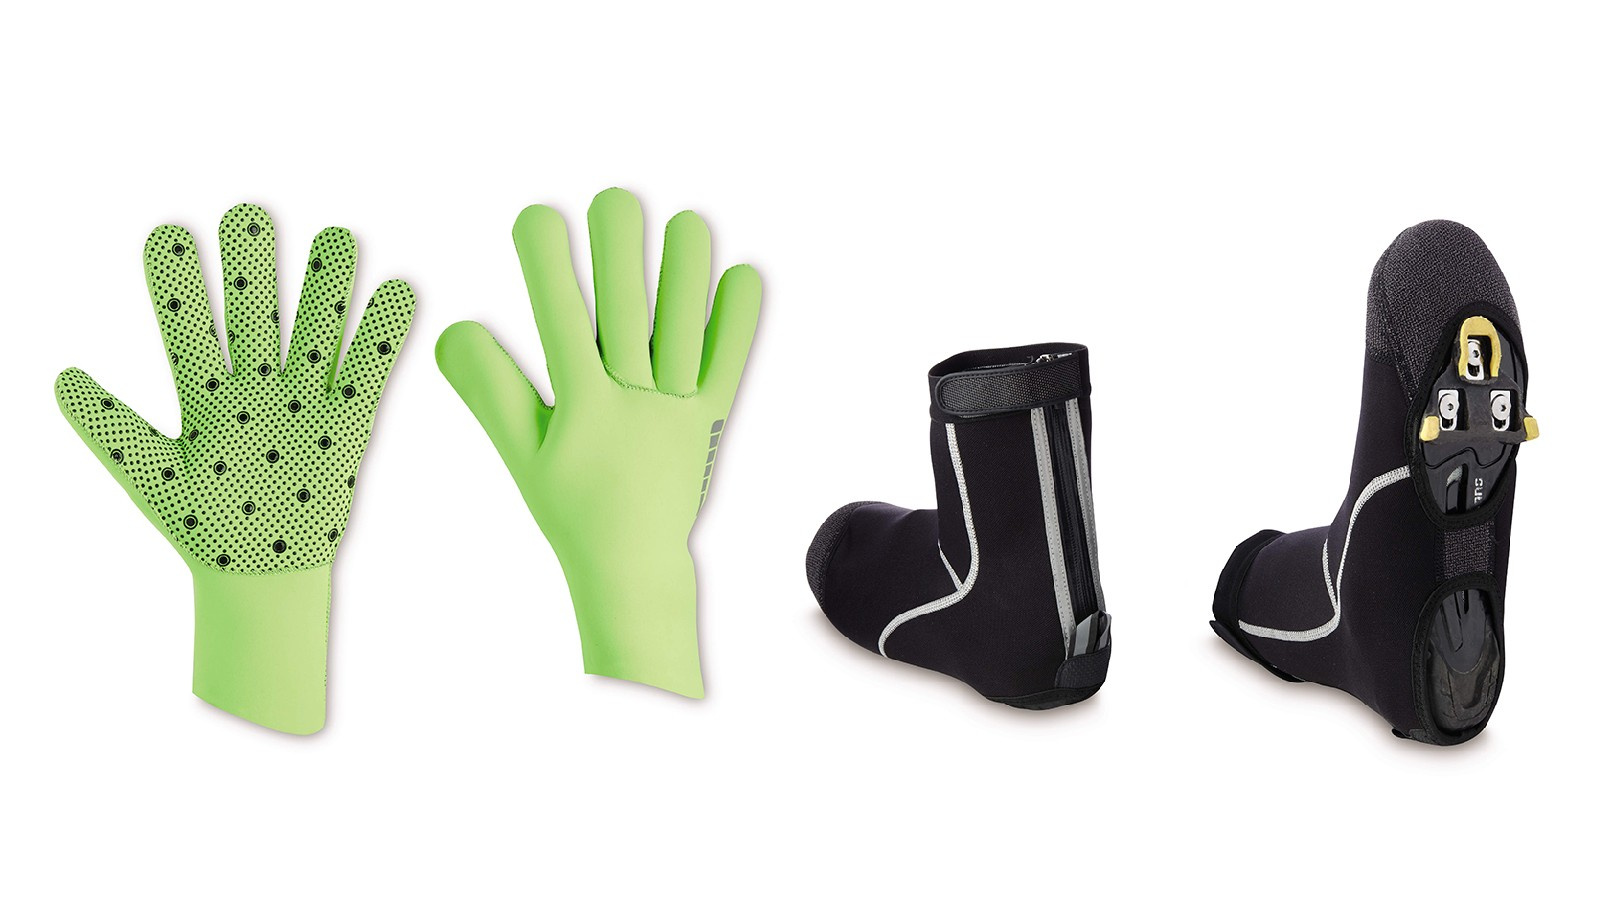 Neoprene gloves and shoe covers look very practical